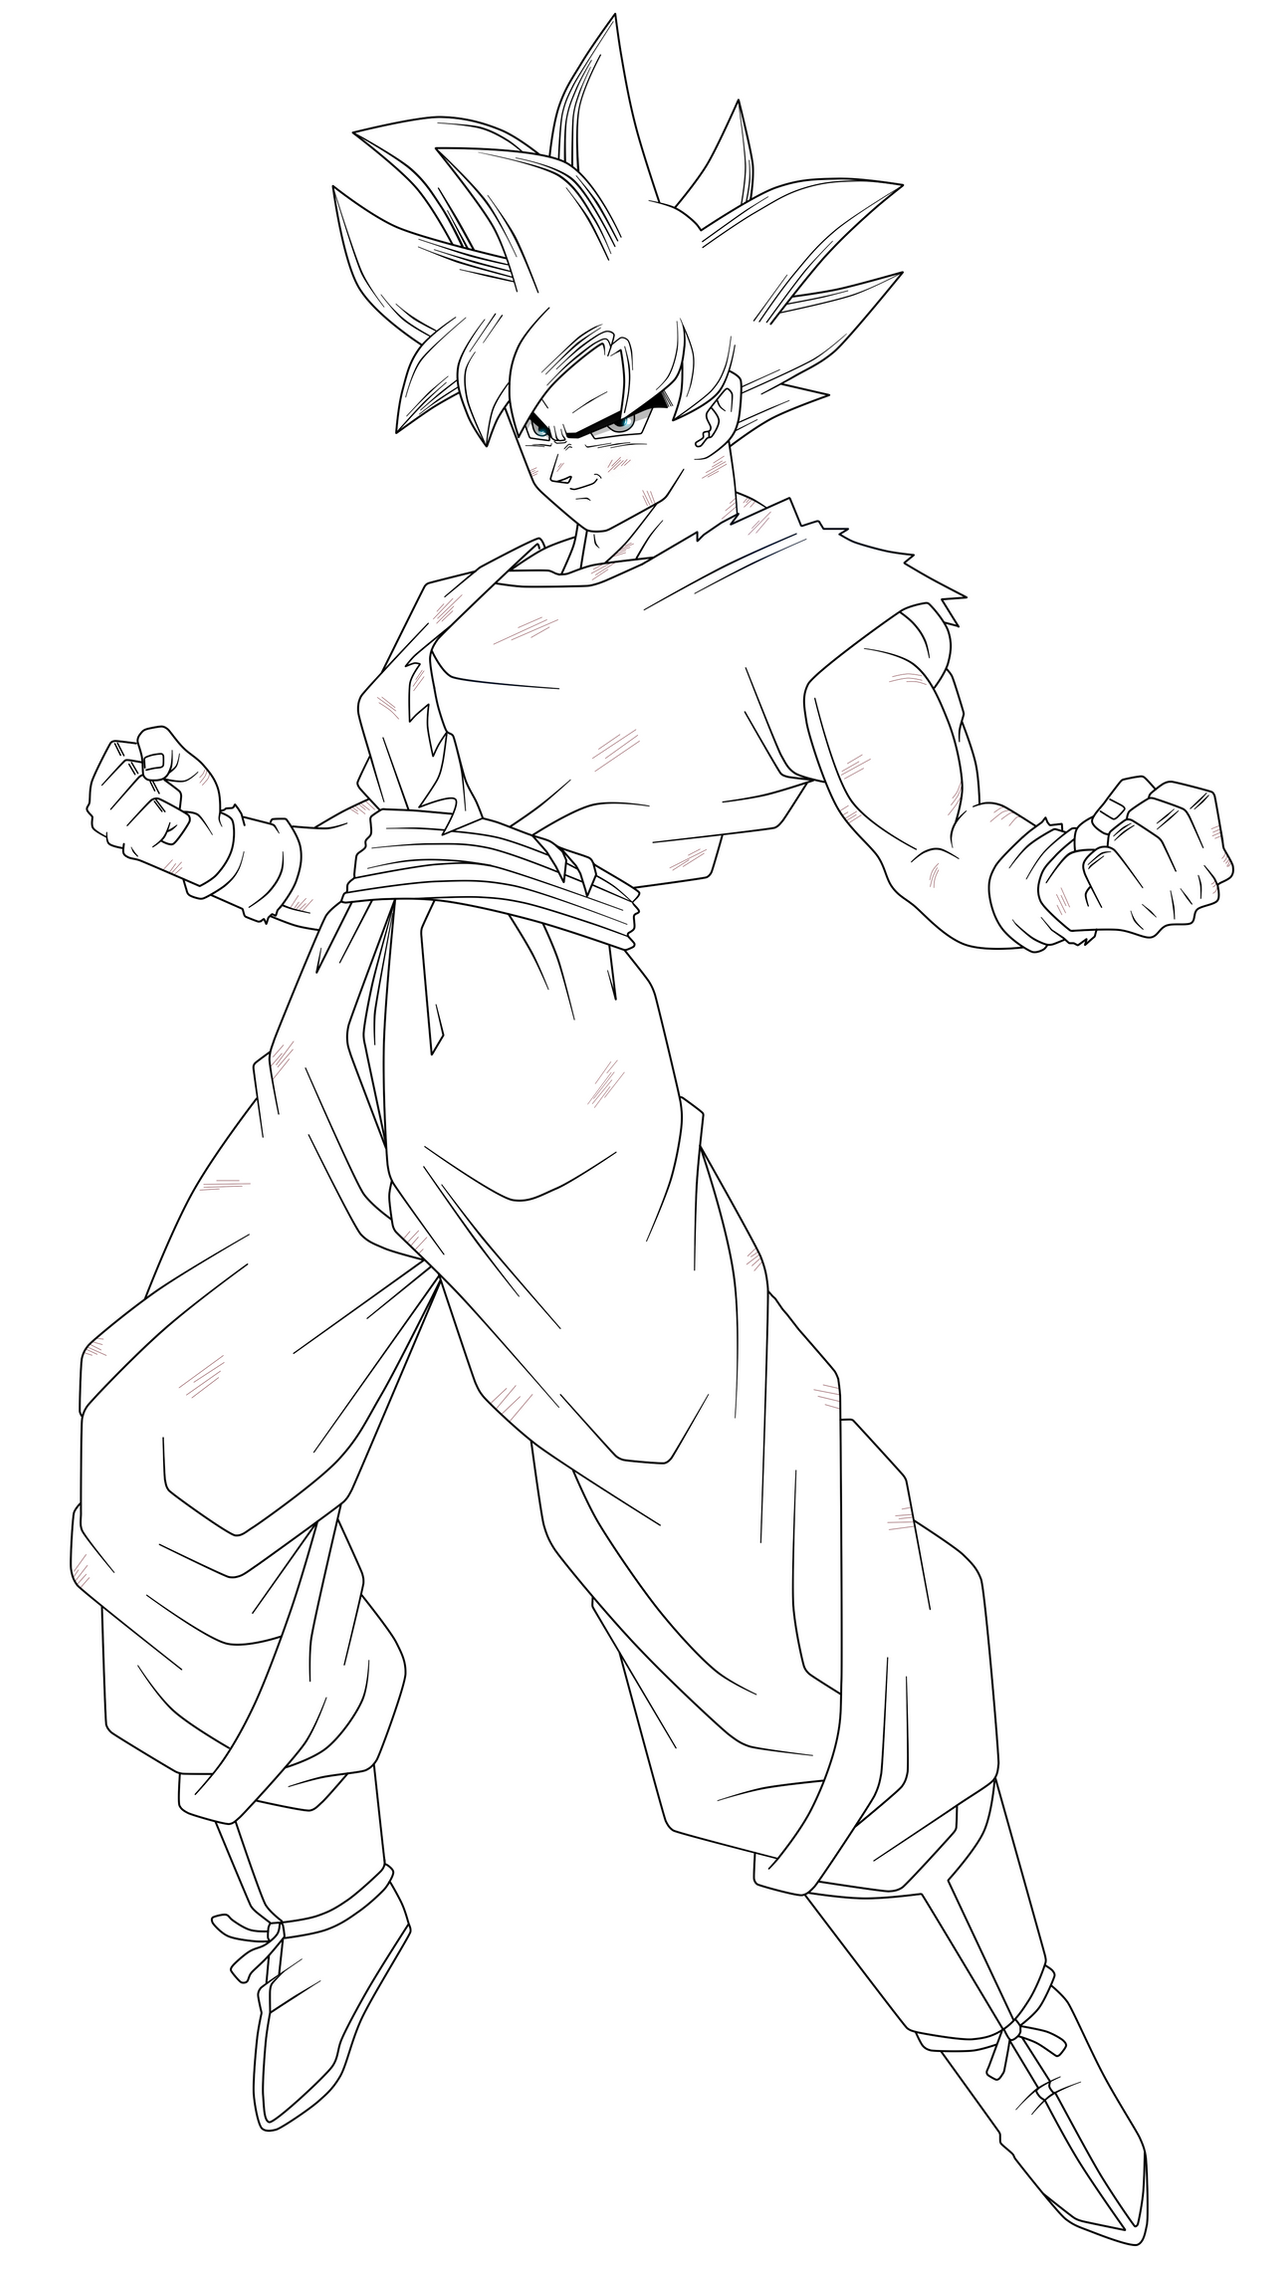 Line Art Render : Goku in the limit lineart by saodvd on deviantart